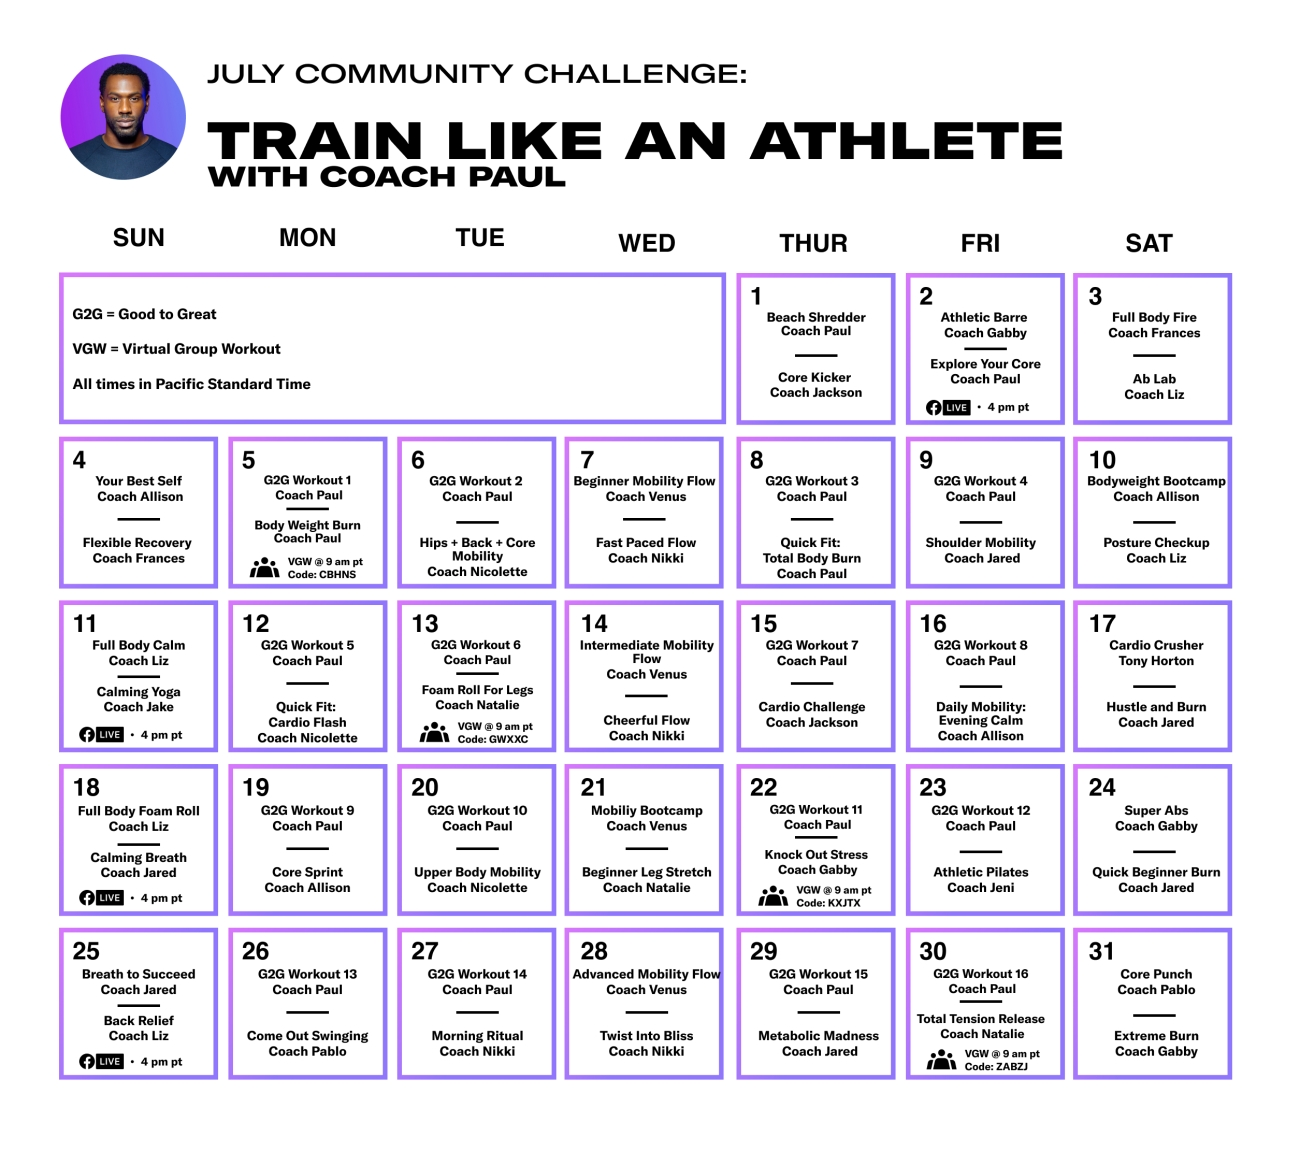 a calendar for the month of july with different workout dates and recommendations